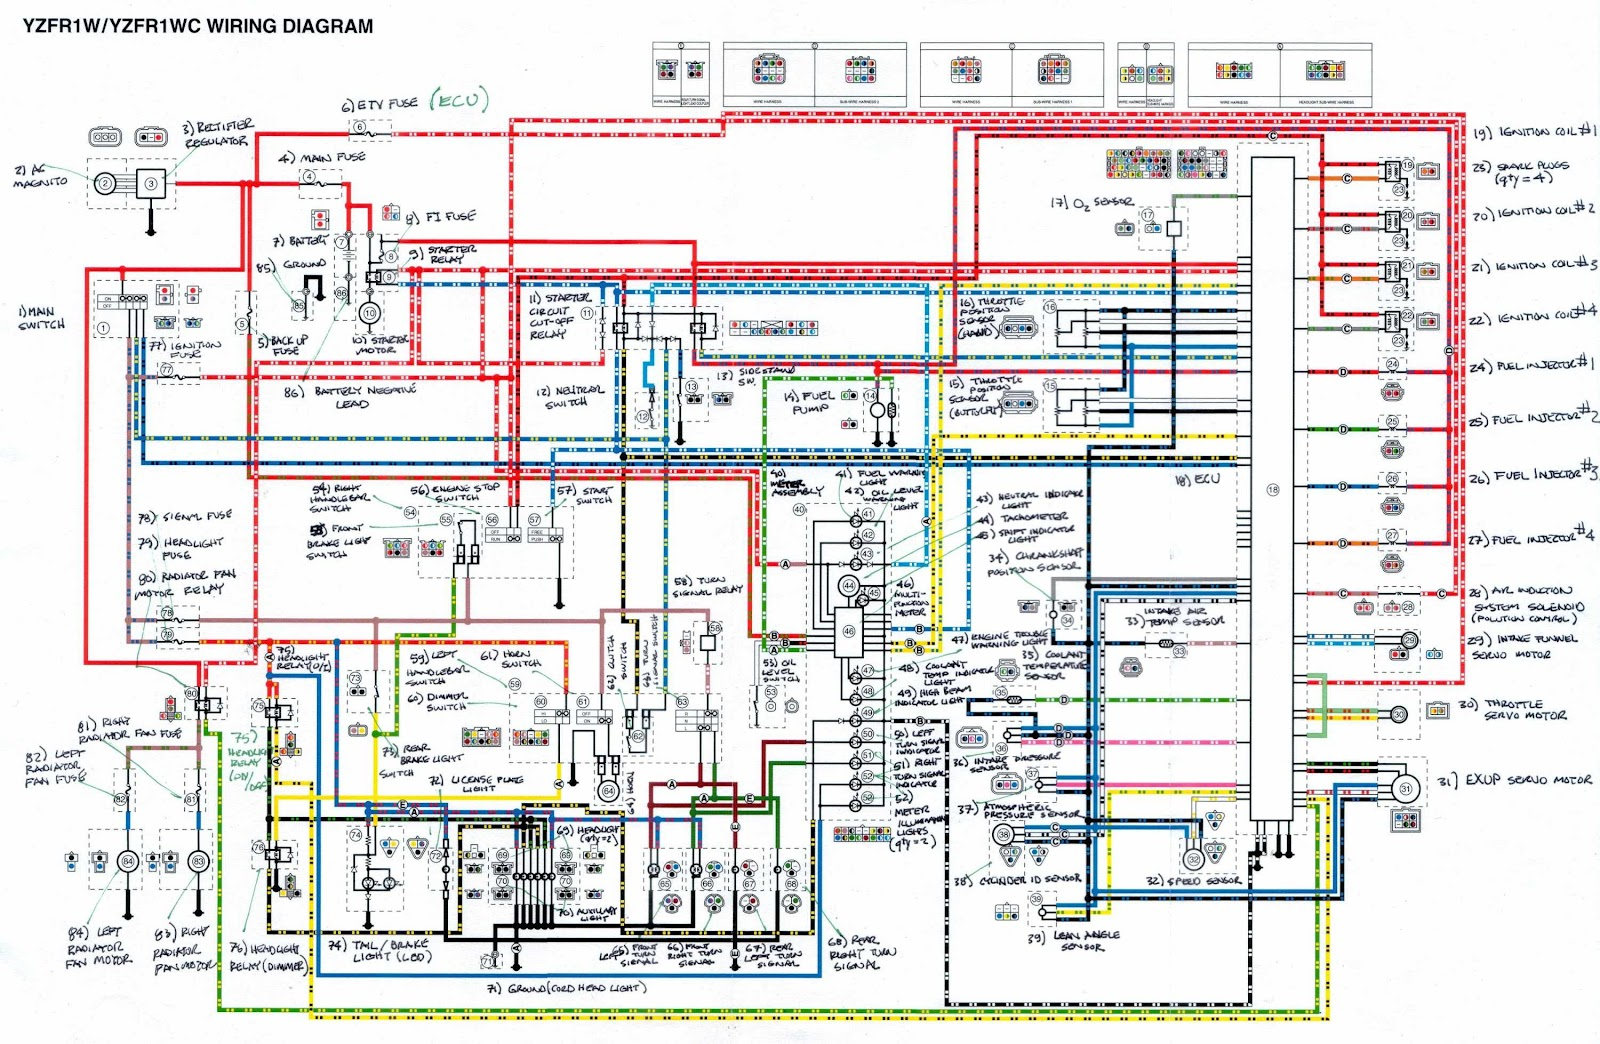 93 Ford Mustang Fuse Block Diagram - List of Wiring Diagrams  Mustang Wiring Diagram on